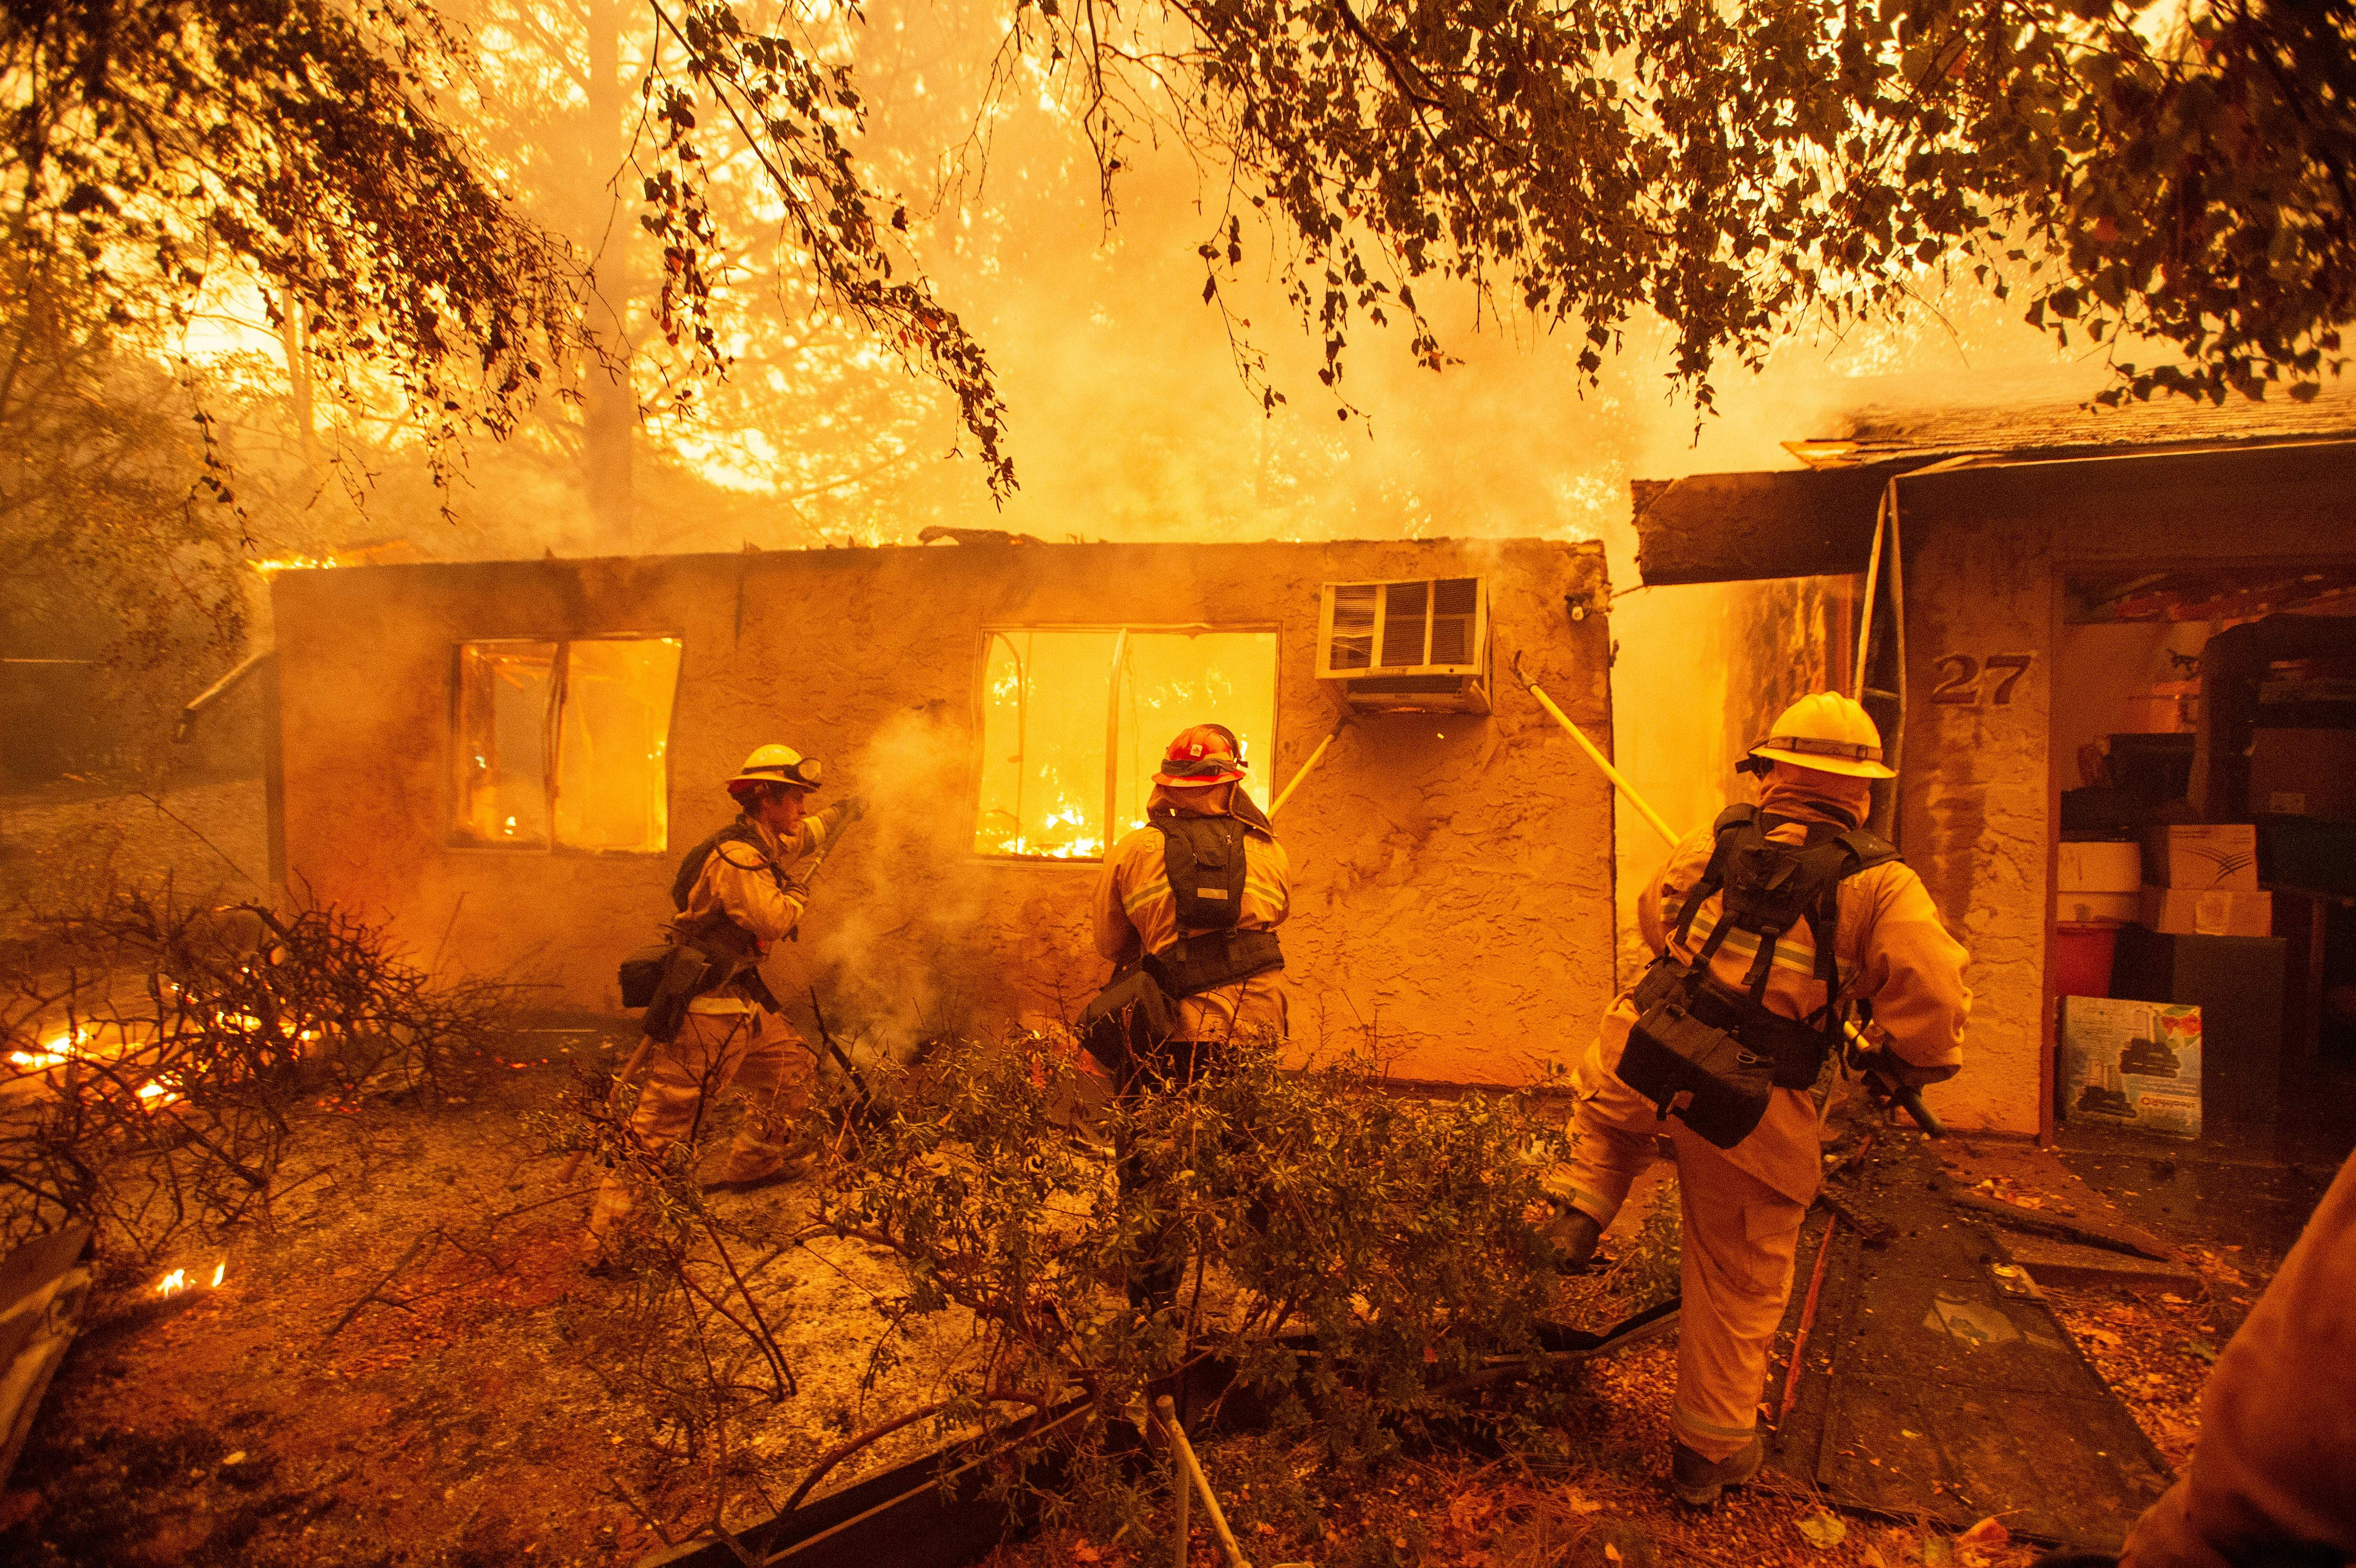 US-FIRE-WEATHER-USA-ENVIRONMENT